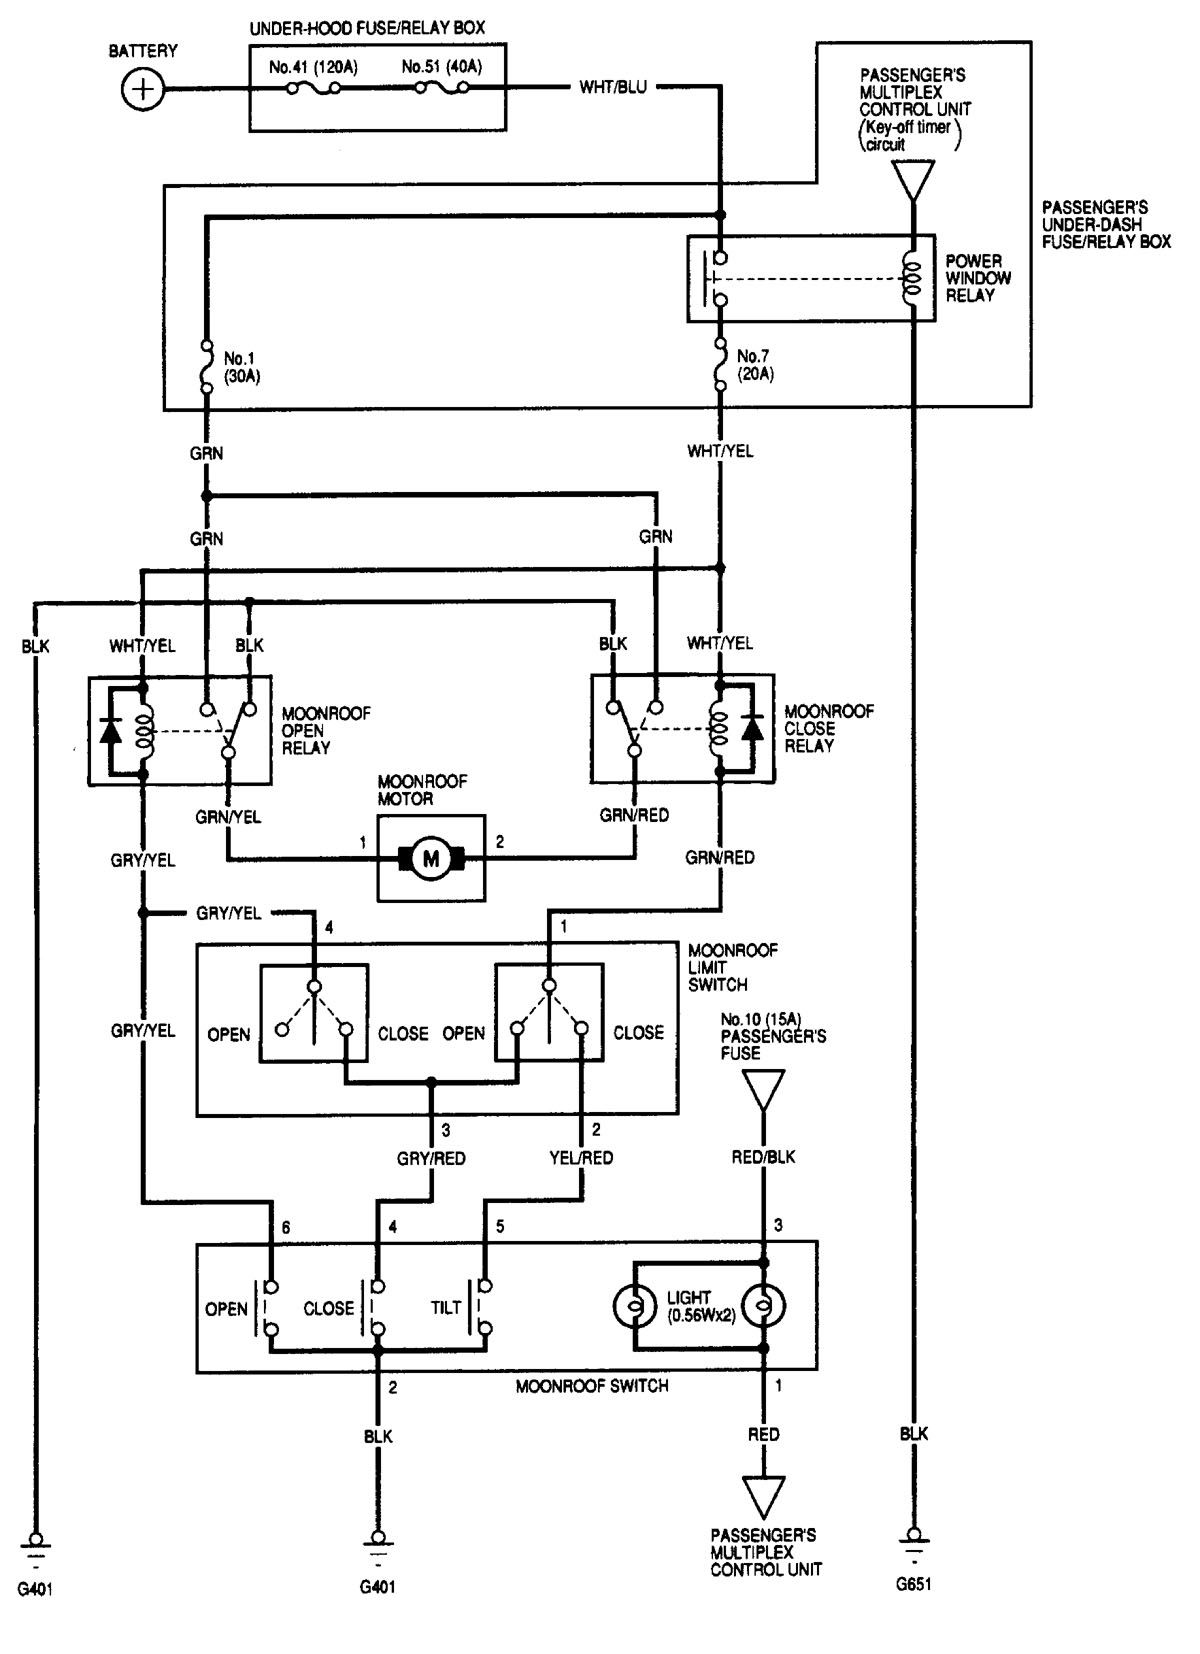 Acura MDX (2001) - wiring diagrams - sun roof - Carknowledge.infoCarknowledge.info